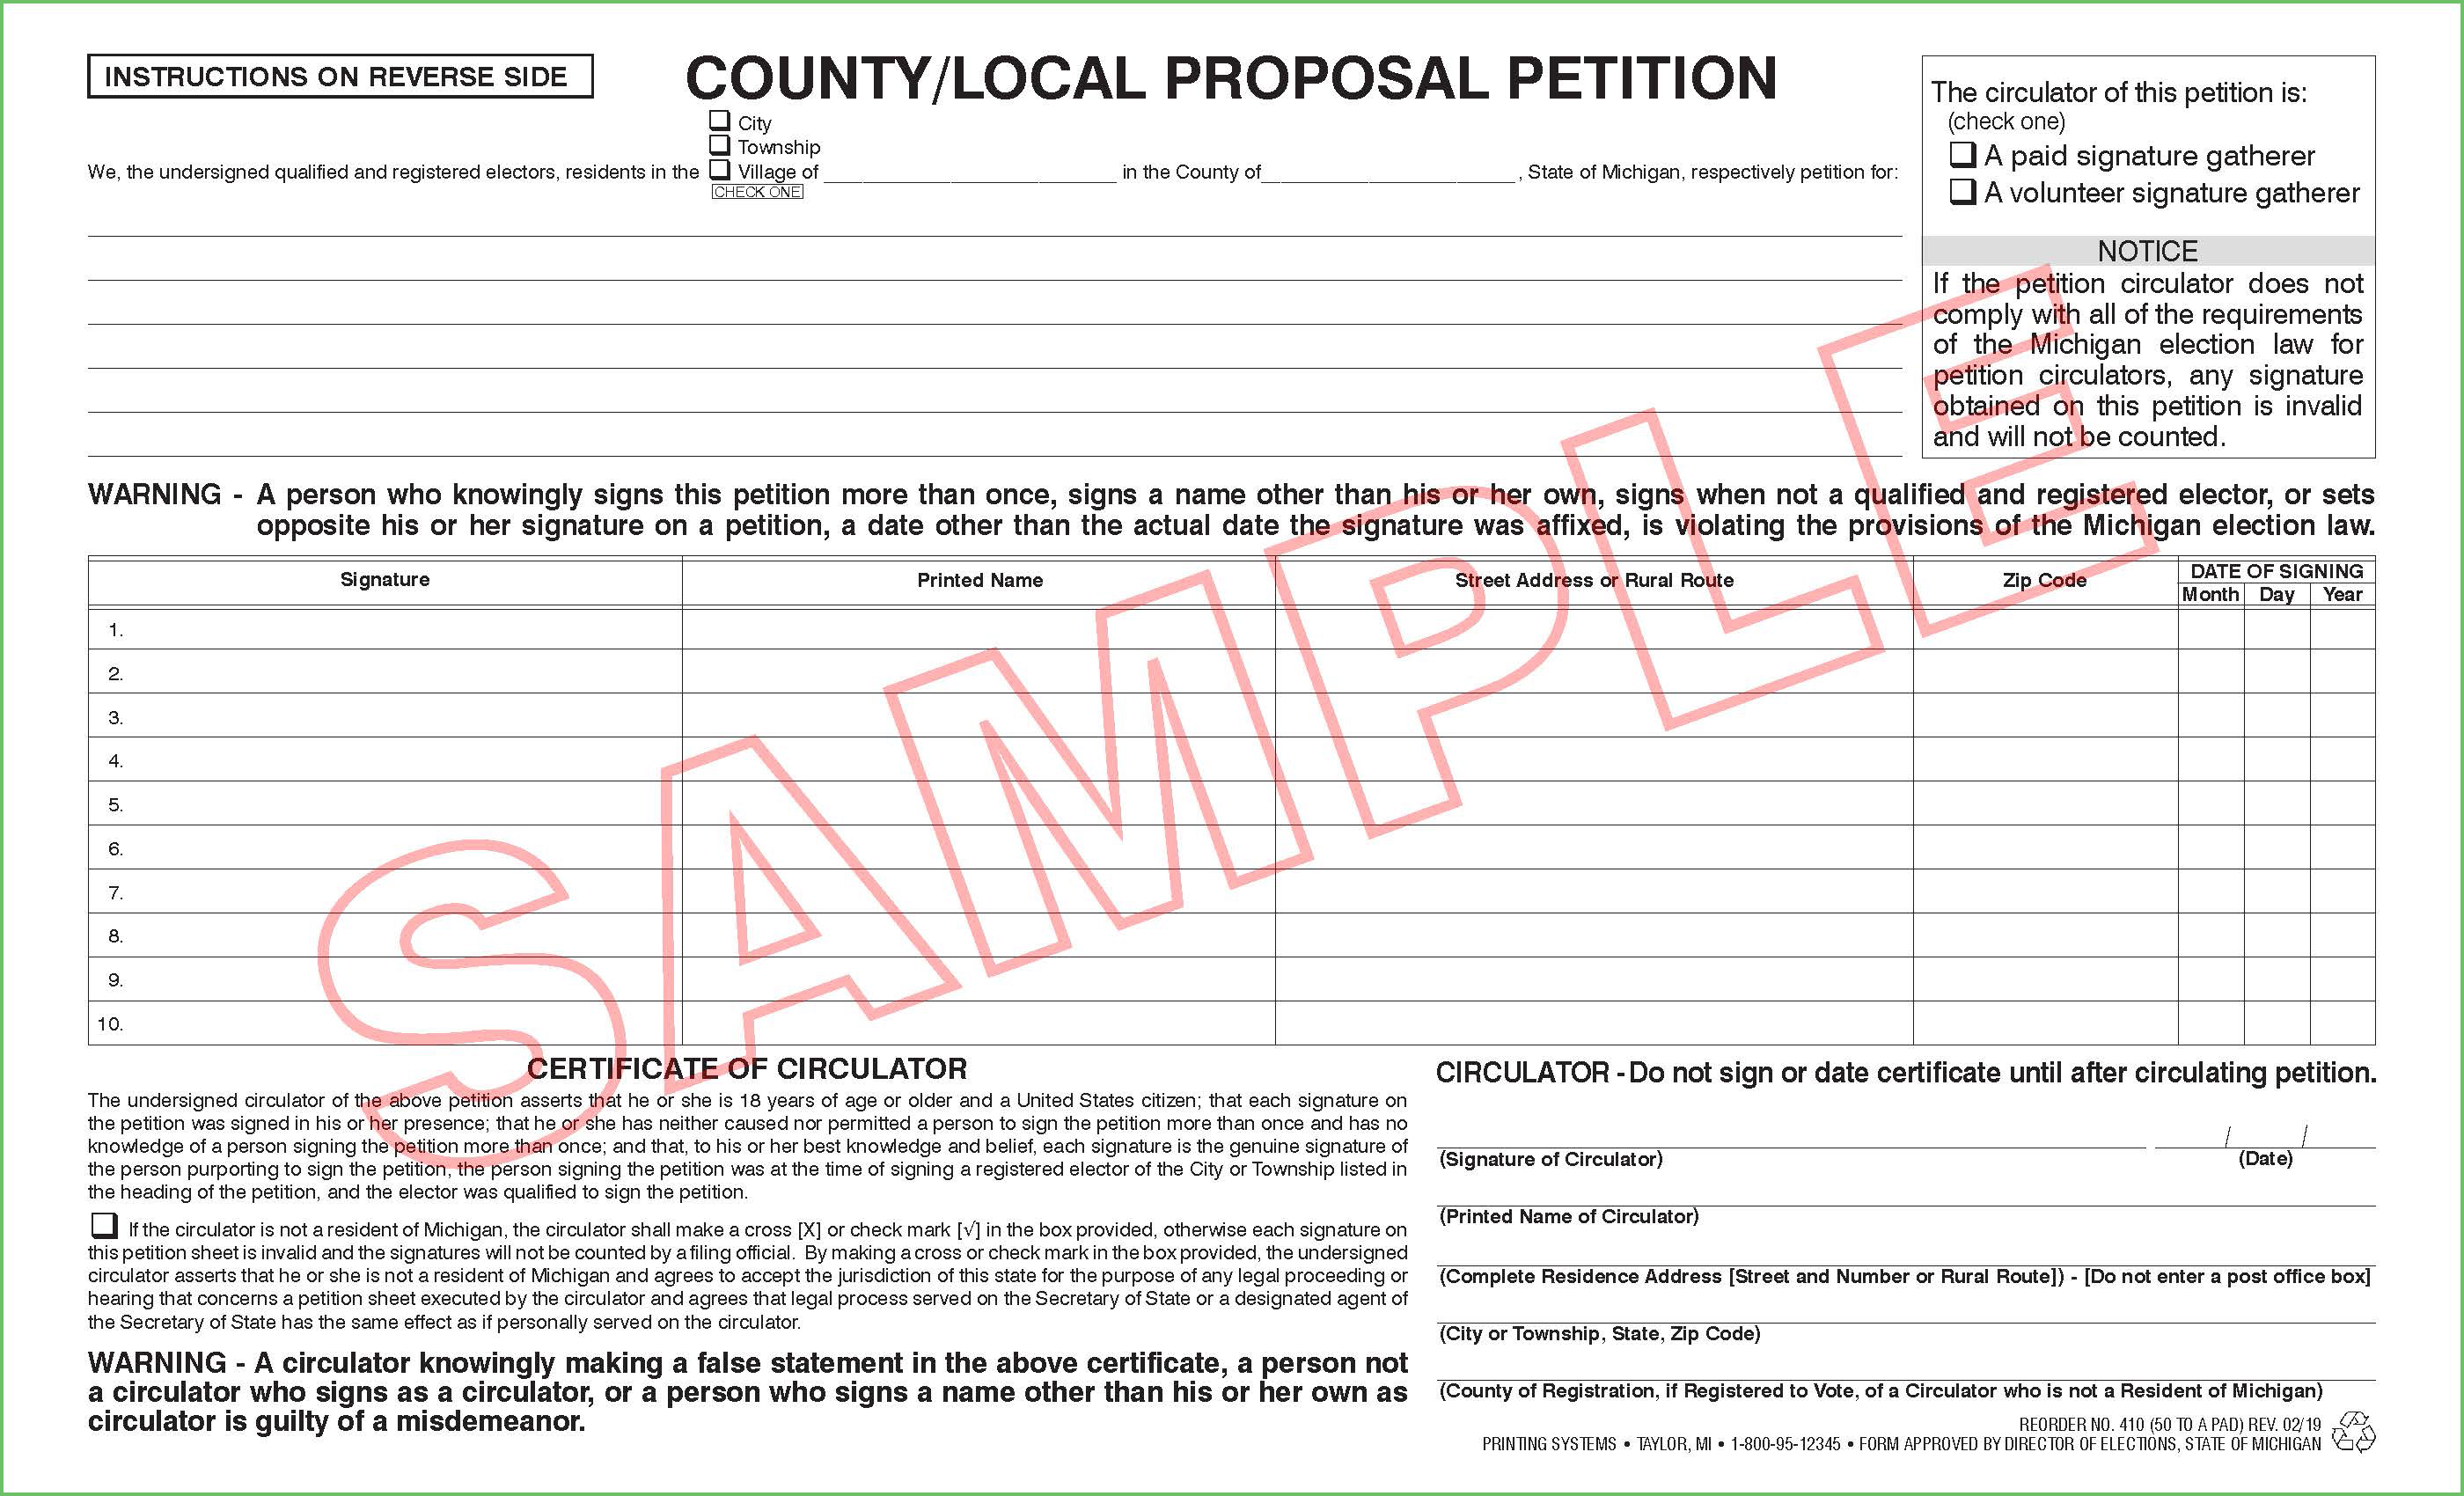 410 County/Local Proposal Petition (Ci/Twp/Village) (50 per pad) Rev. 10/19